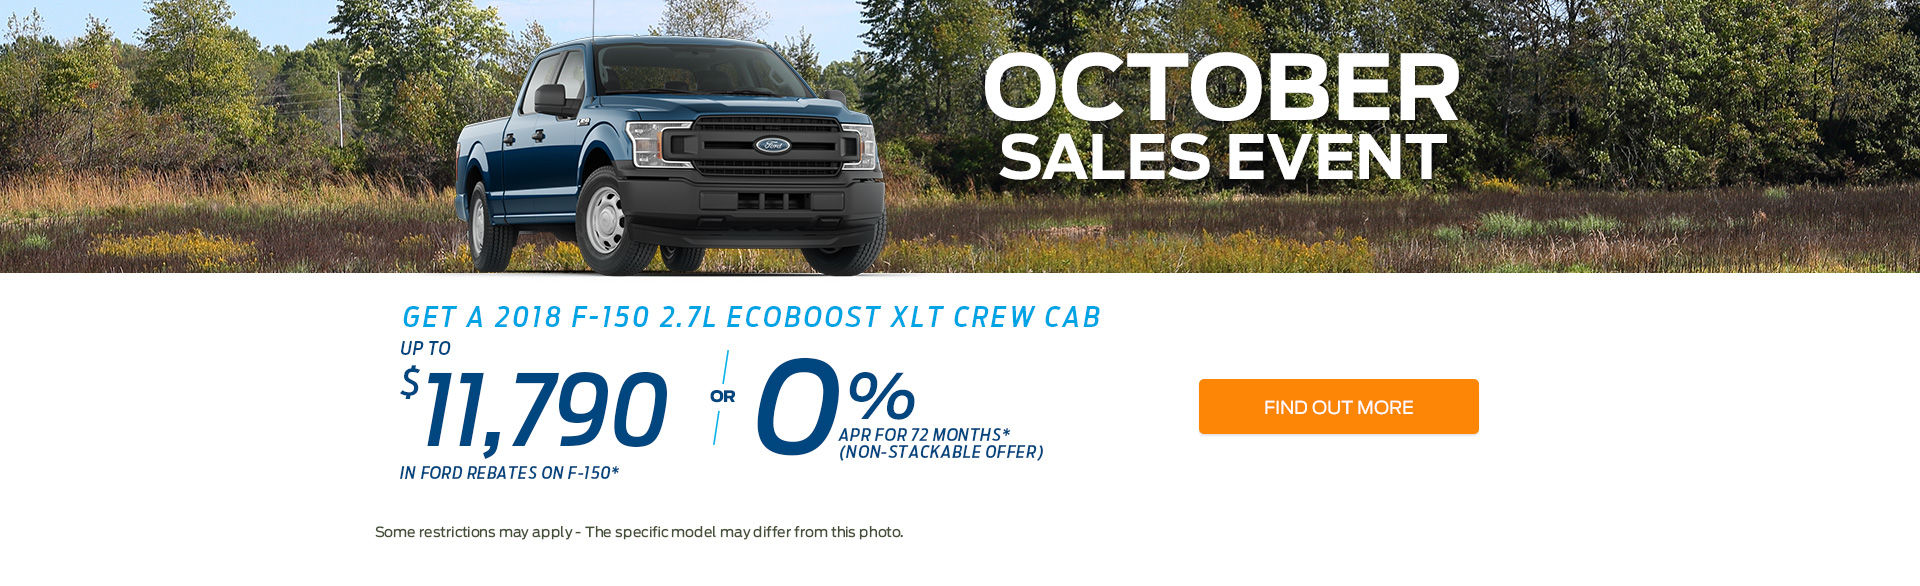 Get the 2018 Ford F-150